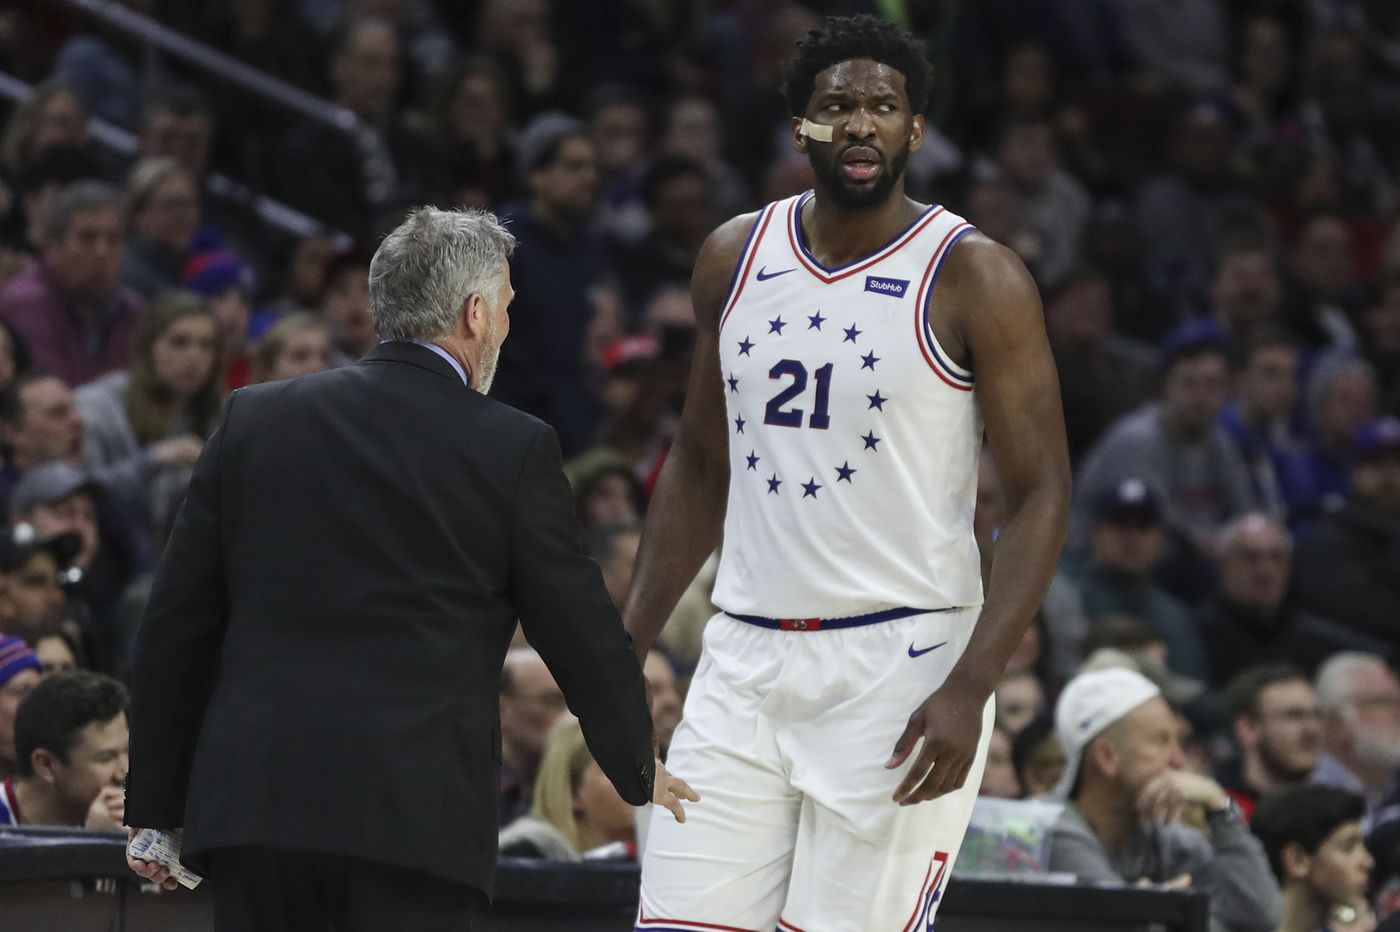 Joel Embiid notches double-double in return as Sixers beat Pacers, 106-89